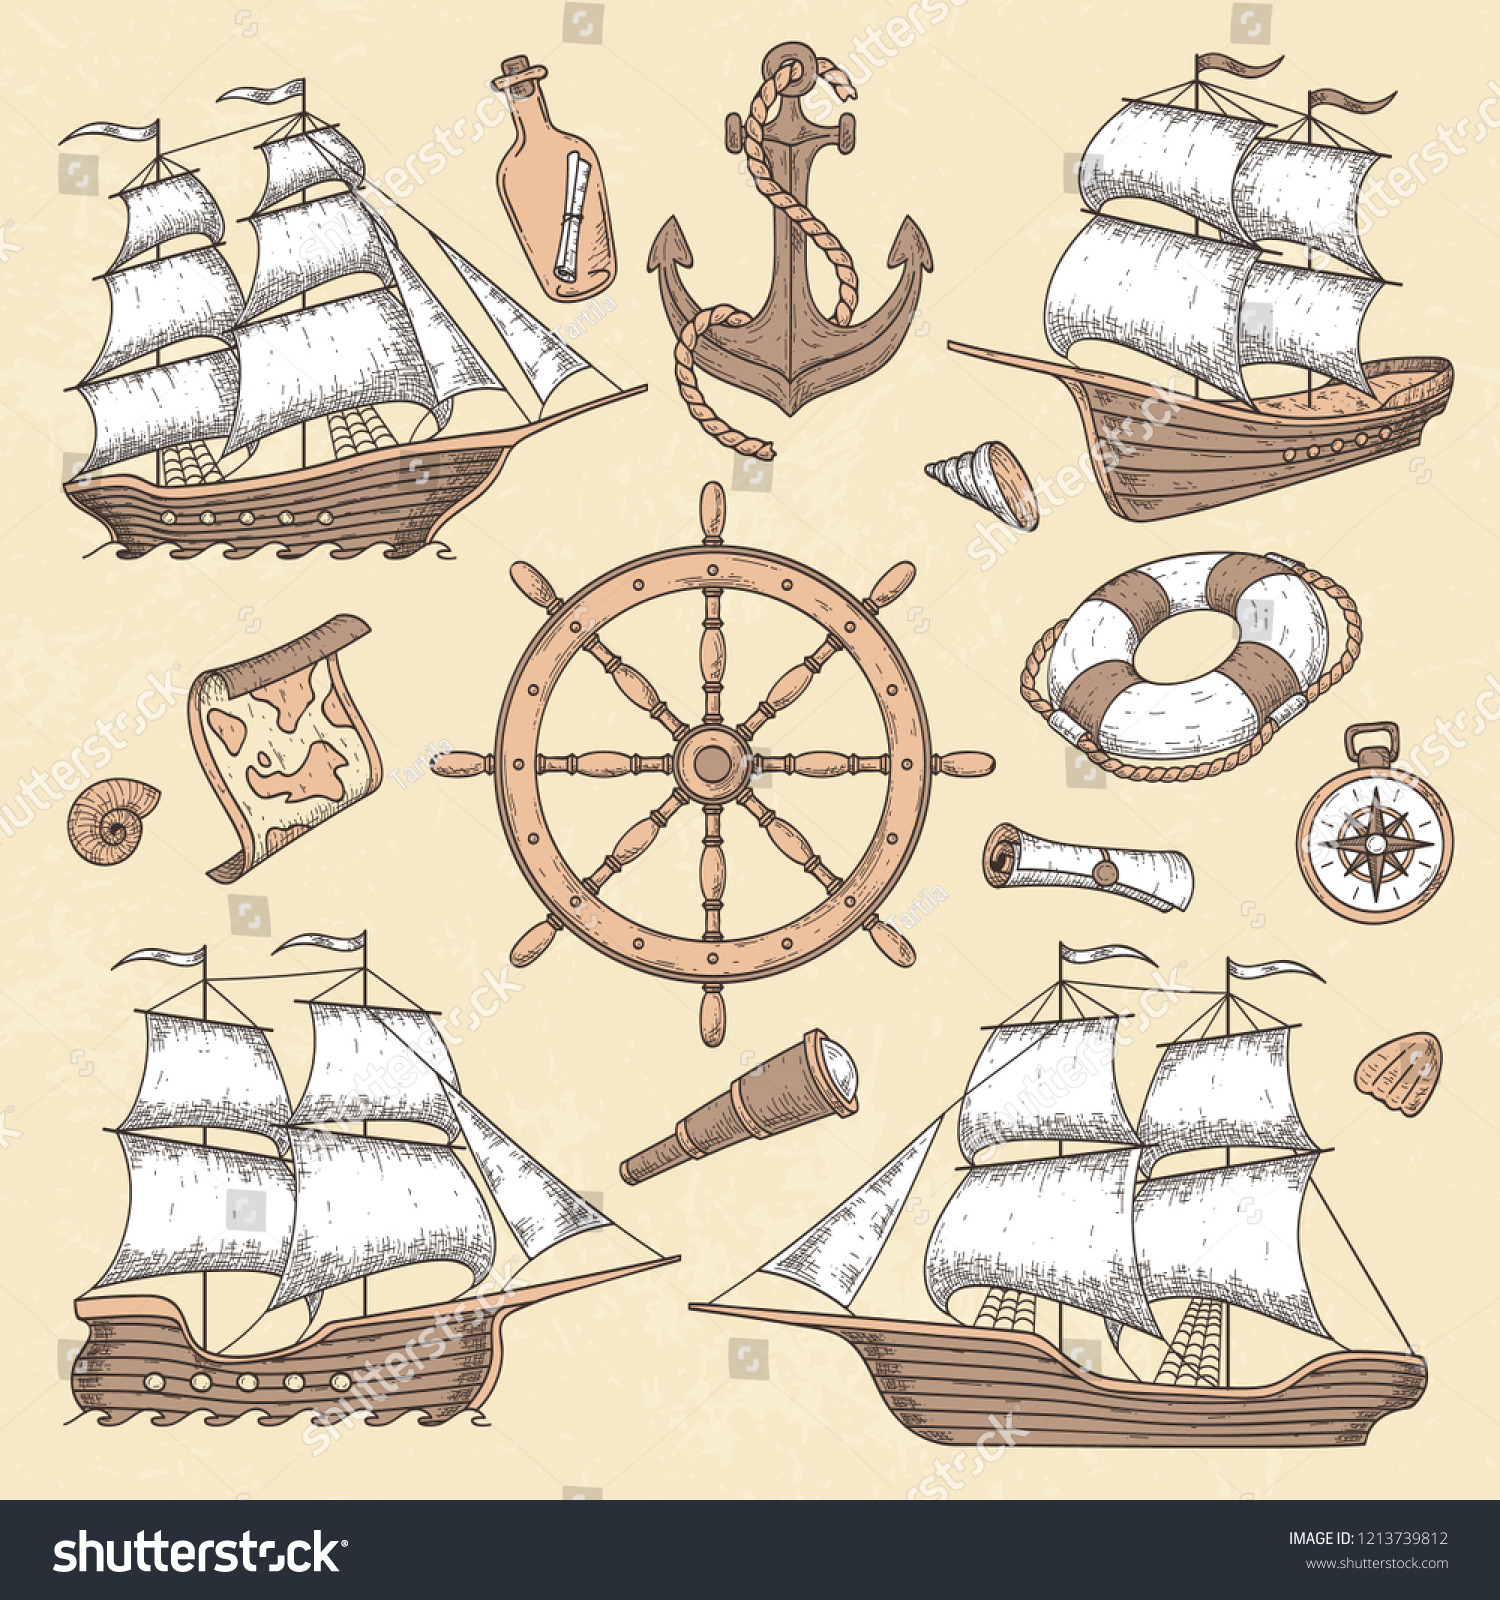 Vintage Marine Ships Old Cartouche Frame Stock Vector Royalty Free